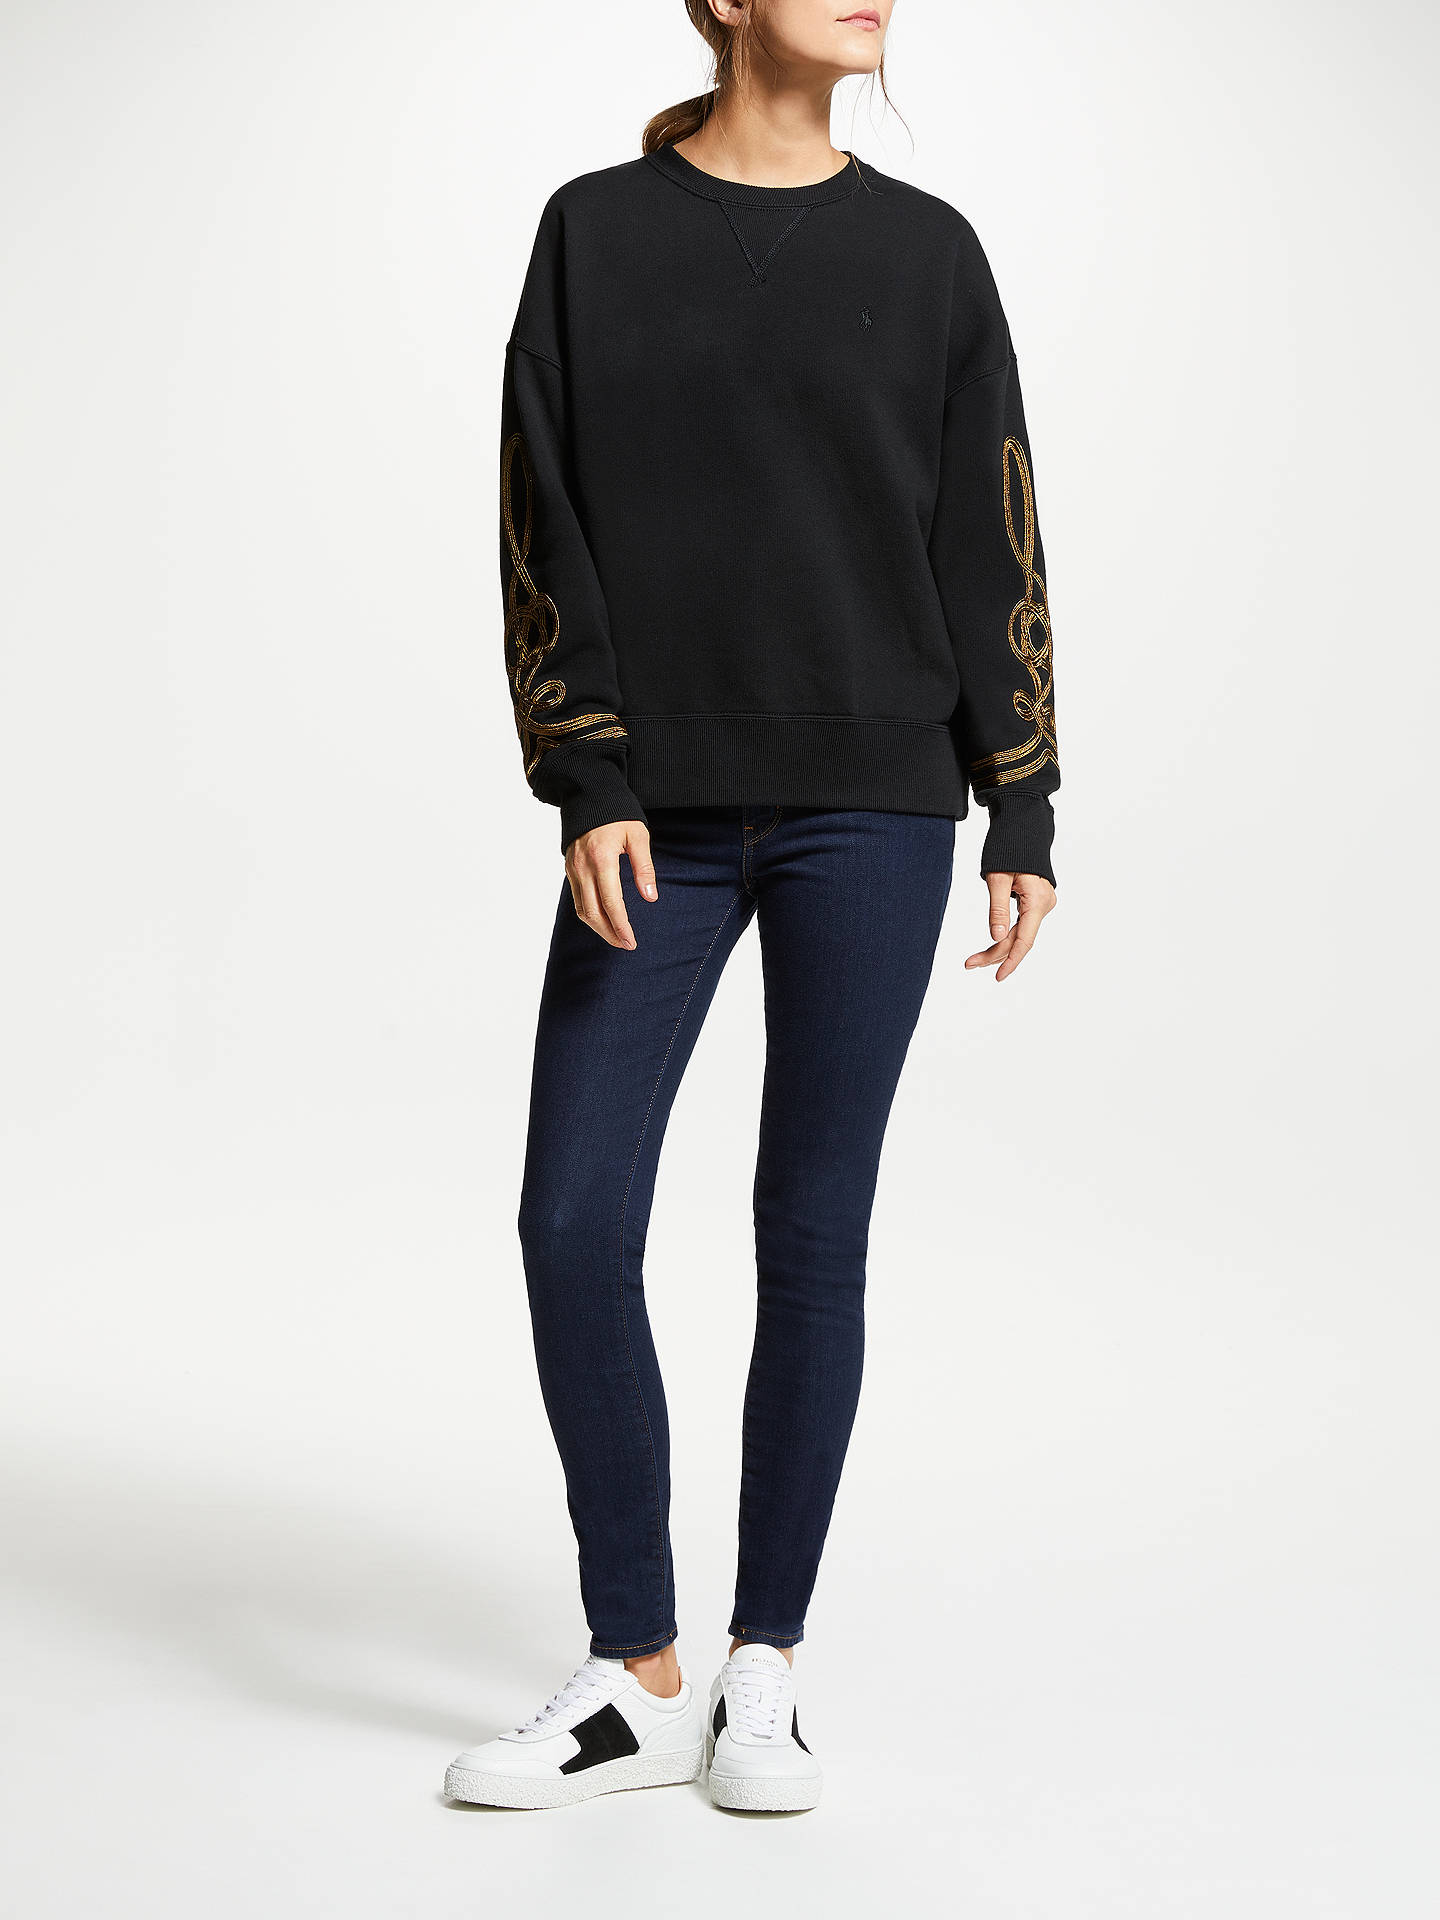 BuyPolo Ralph Lauren Bullion Trim Sweatshirt, Polo Black, XS Online at johnlewis.com